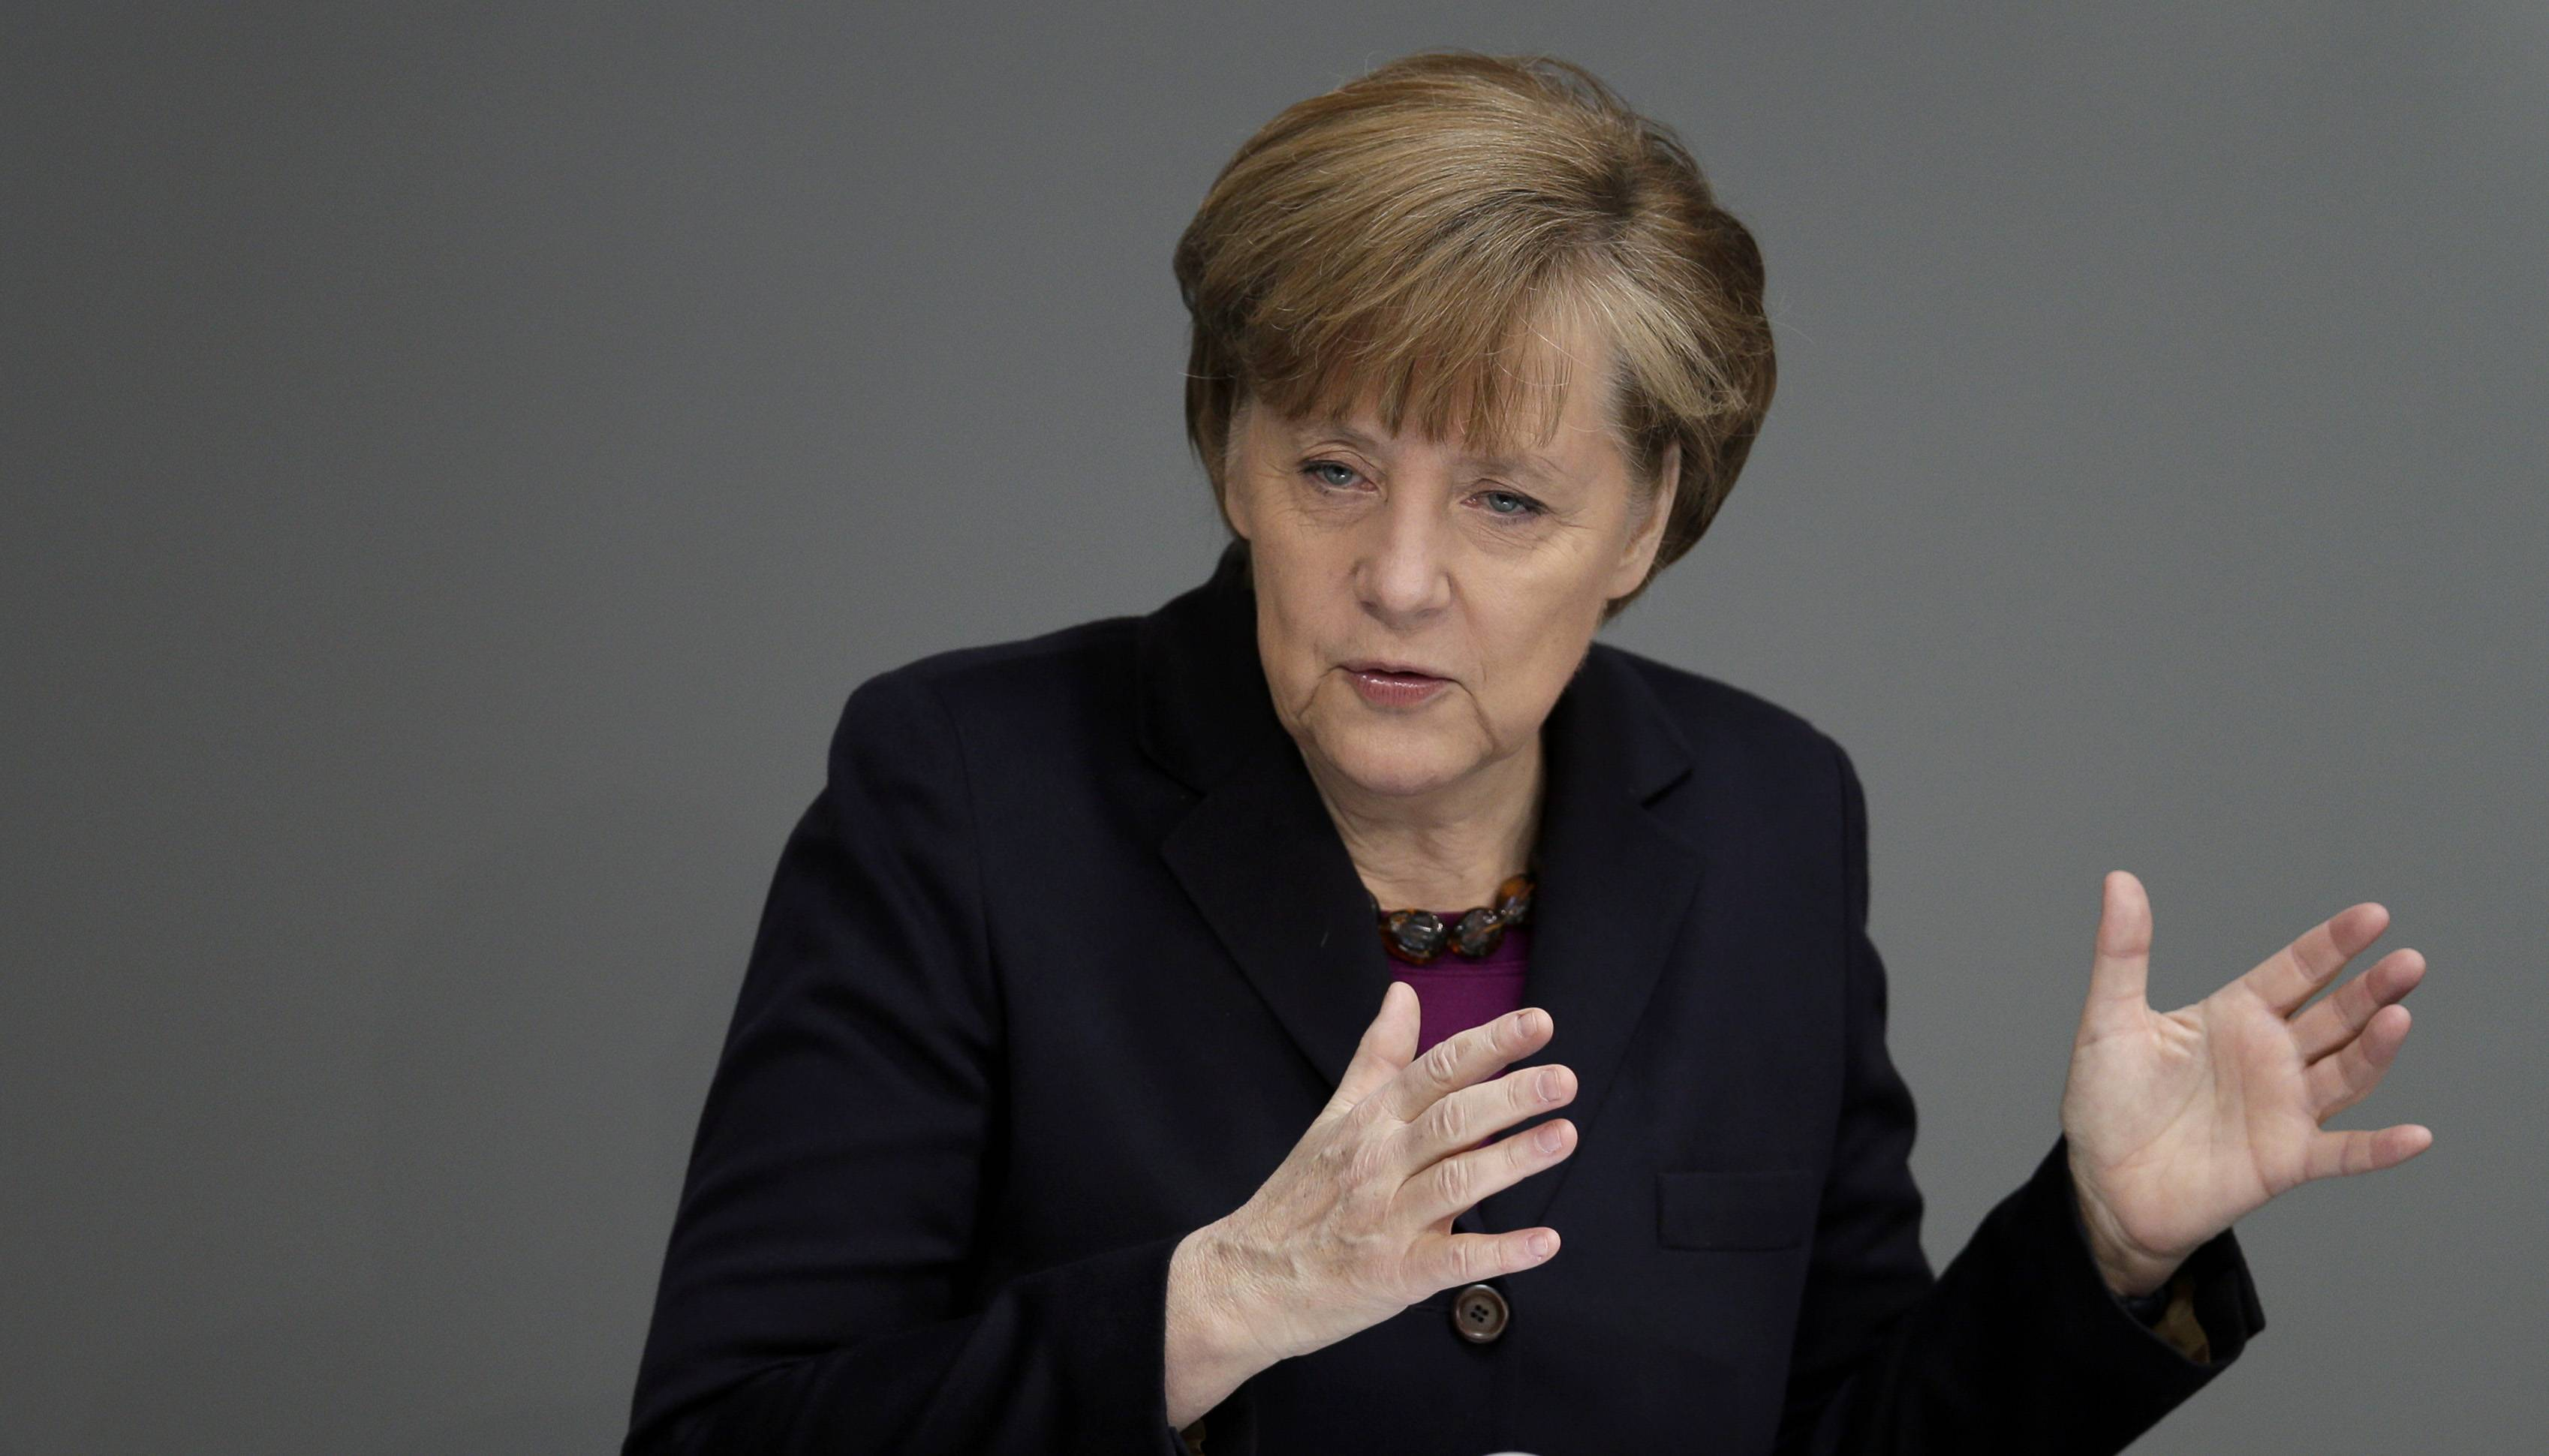 In an address to the German Parliament, Chancellor Angela Merkel said the EU was readying further sanctions and that the G-8 forum of leading economies had been suspended indefinitely.